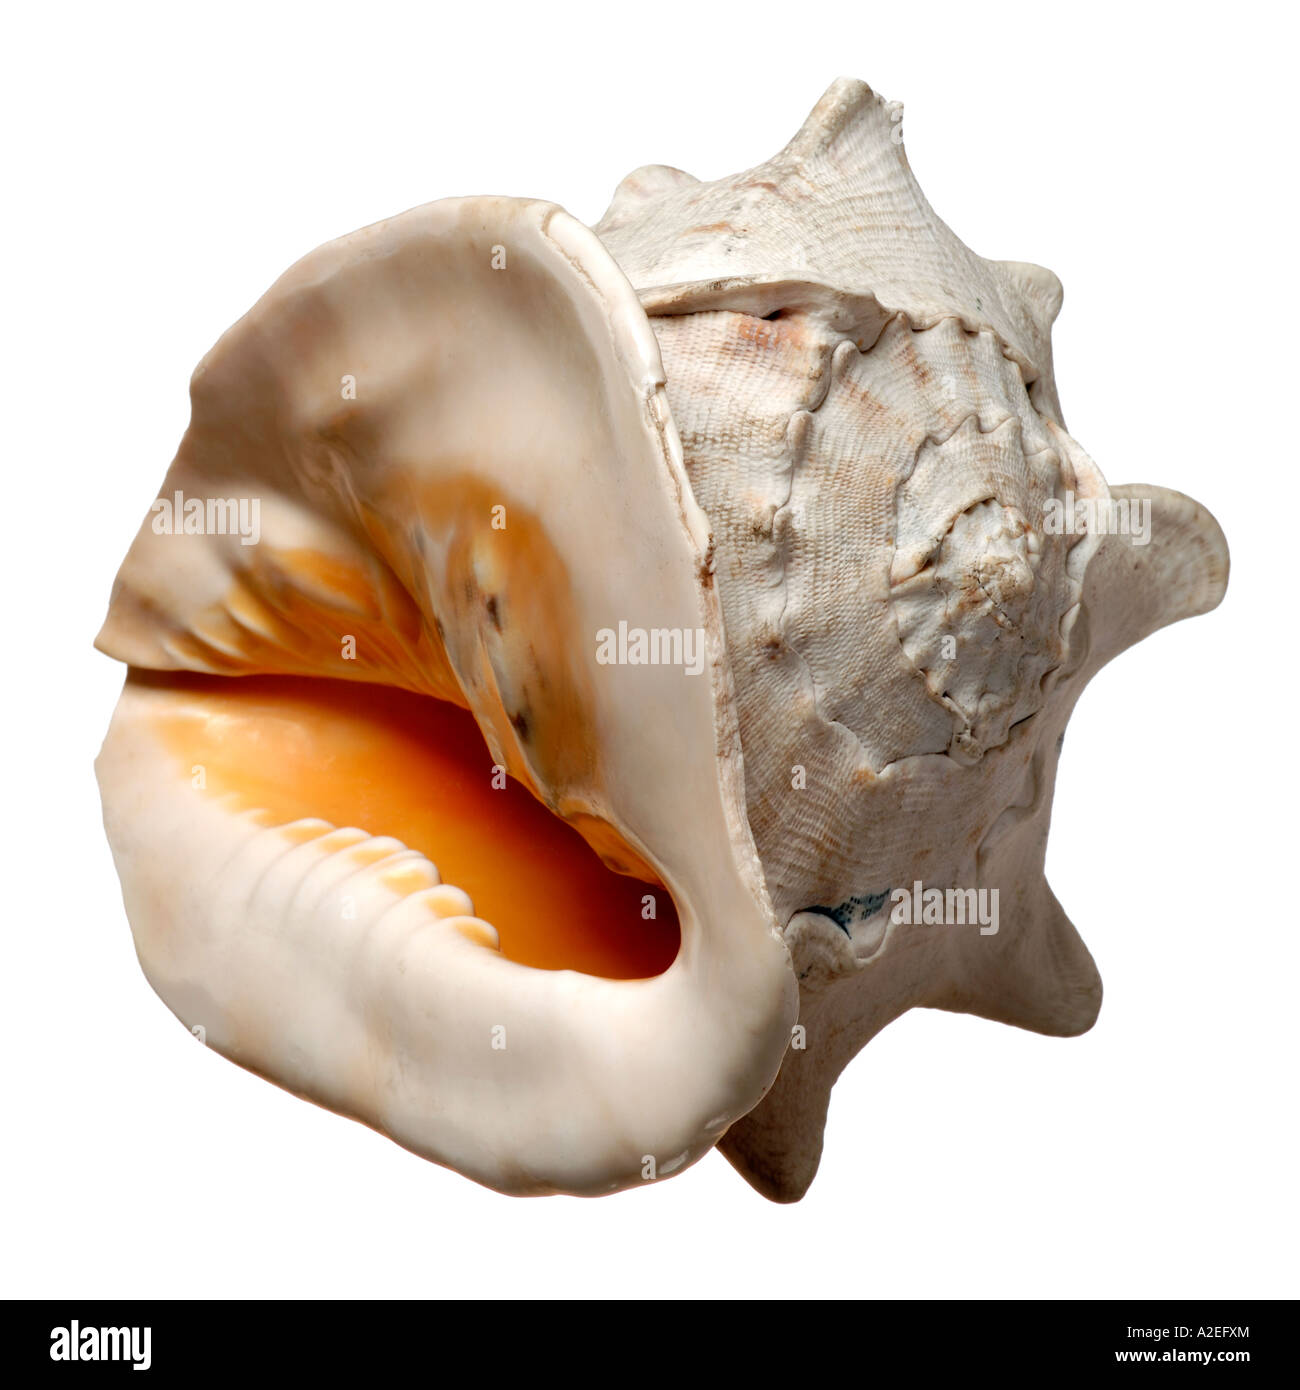 Conch shell - Stock Image